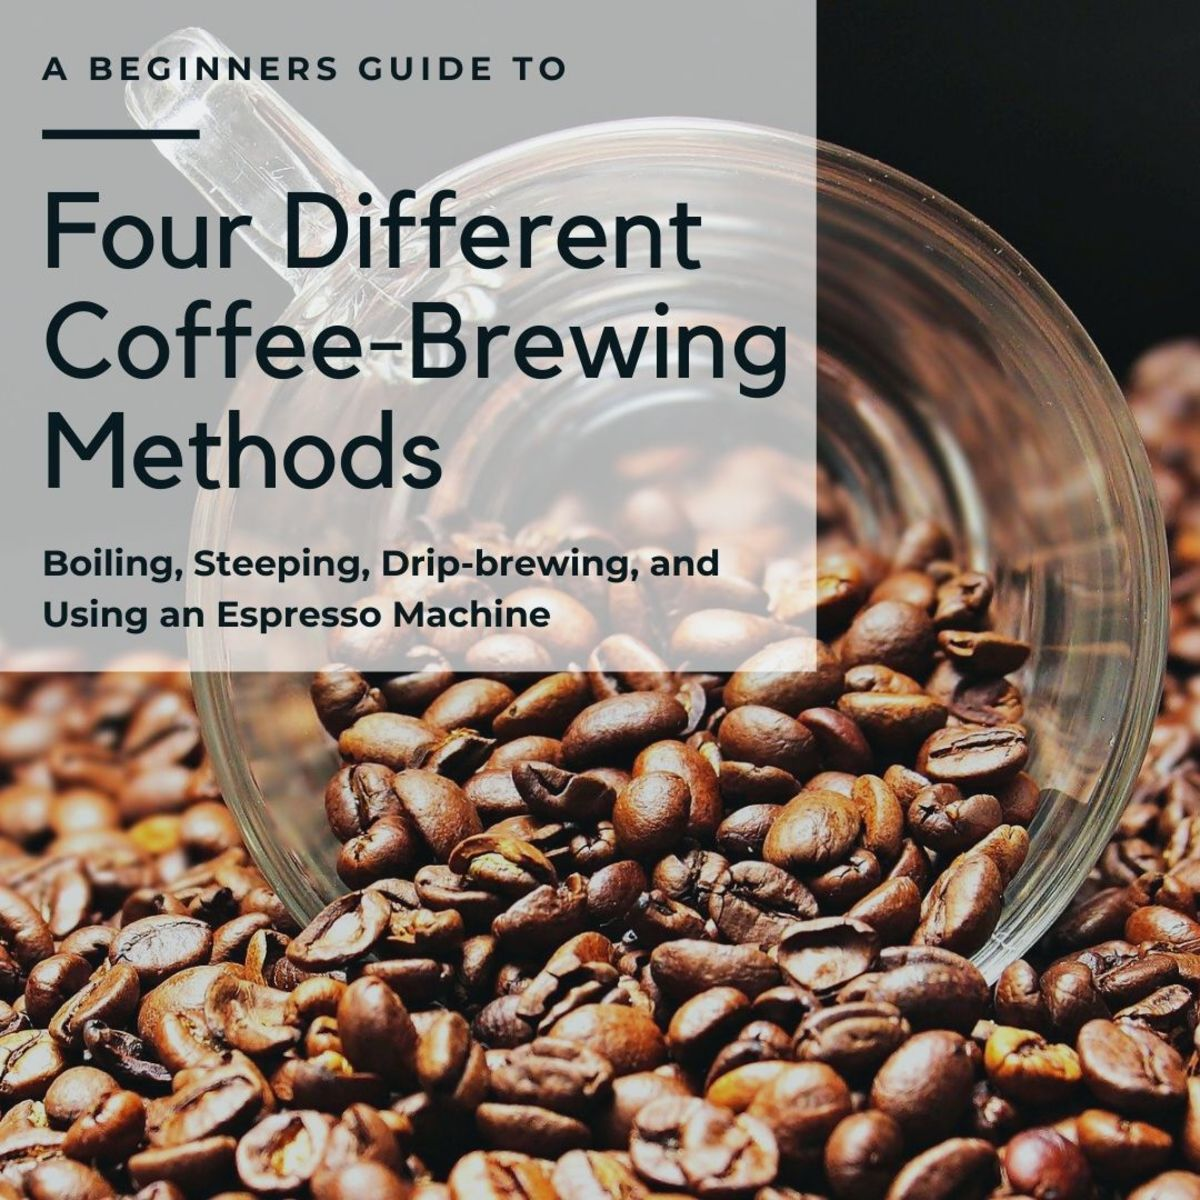 A Guide to Four of the Most Types of Coffee Brewing Methods